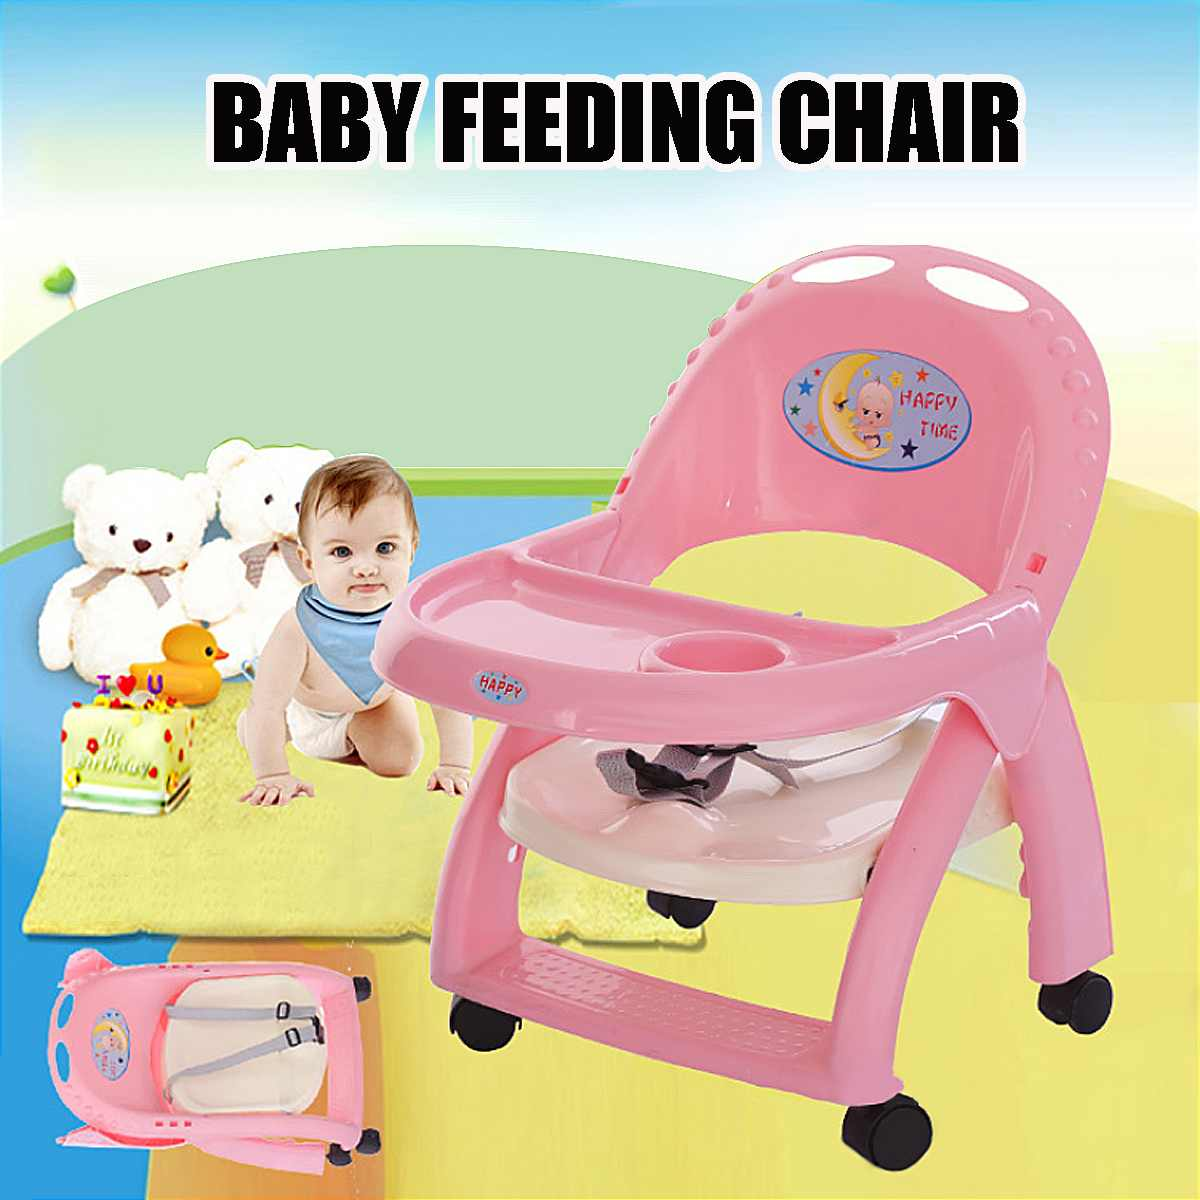 F977eb Buy Booster Eating Seat For Babies And Get Free Shipping